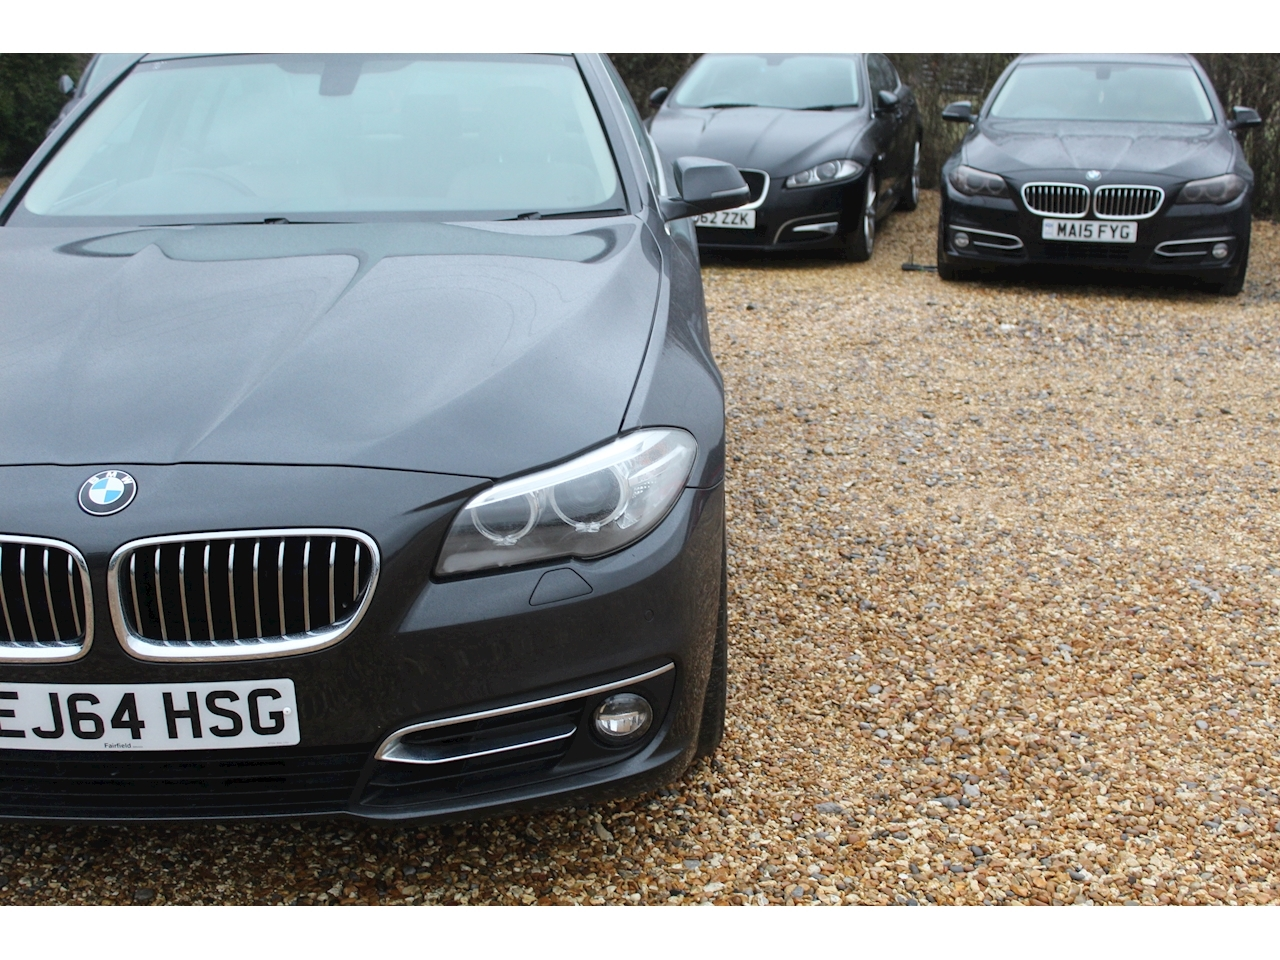 BMW 3.0 530d Luxury Saloon 4dr Diesel Automatic (139 g/km, 258 bhp)